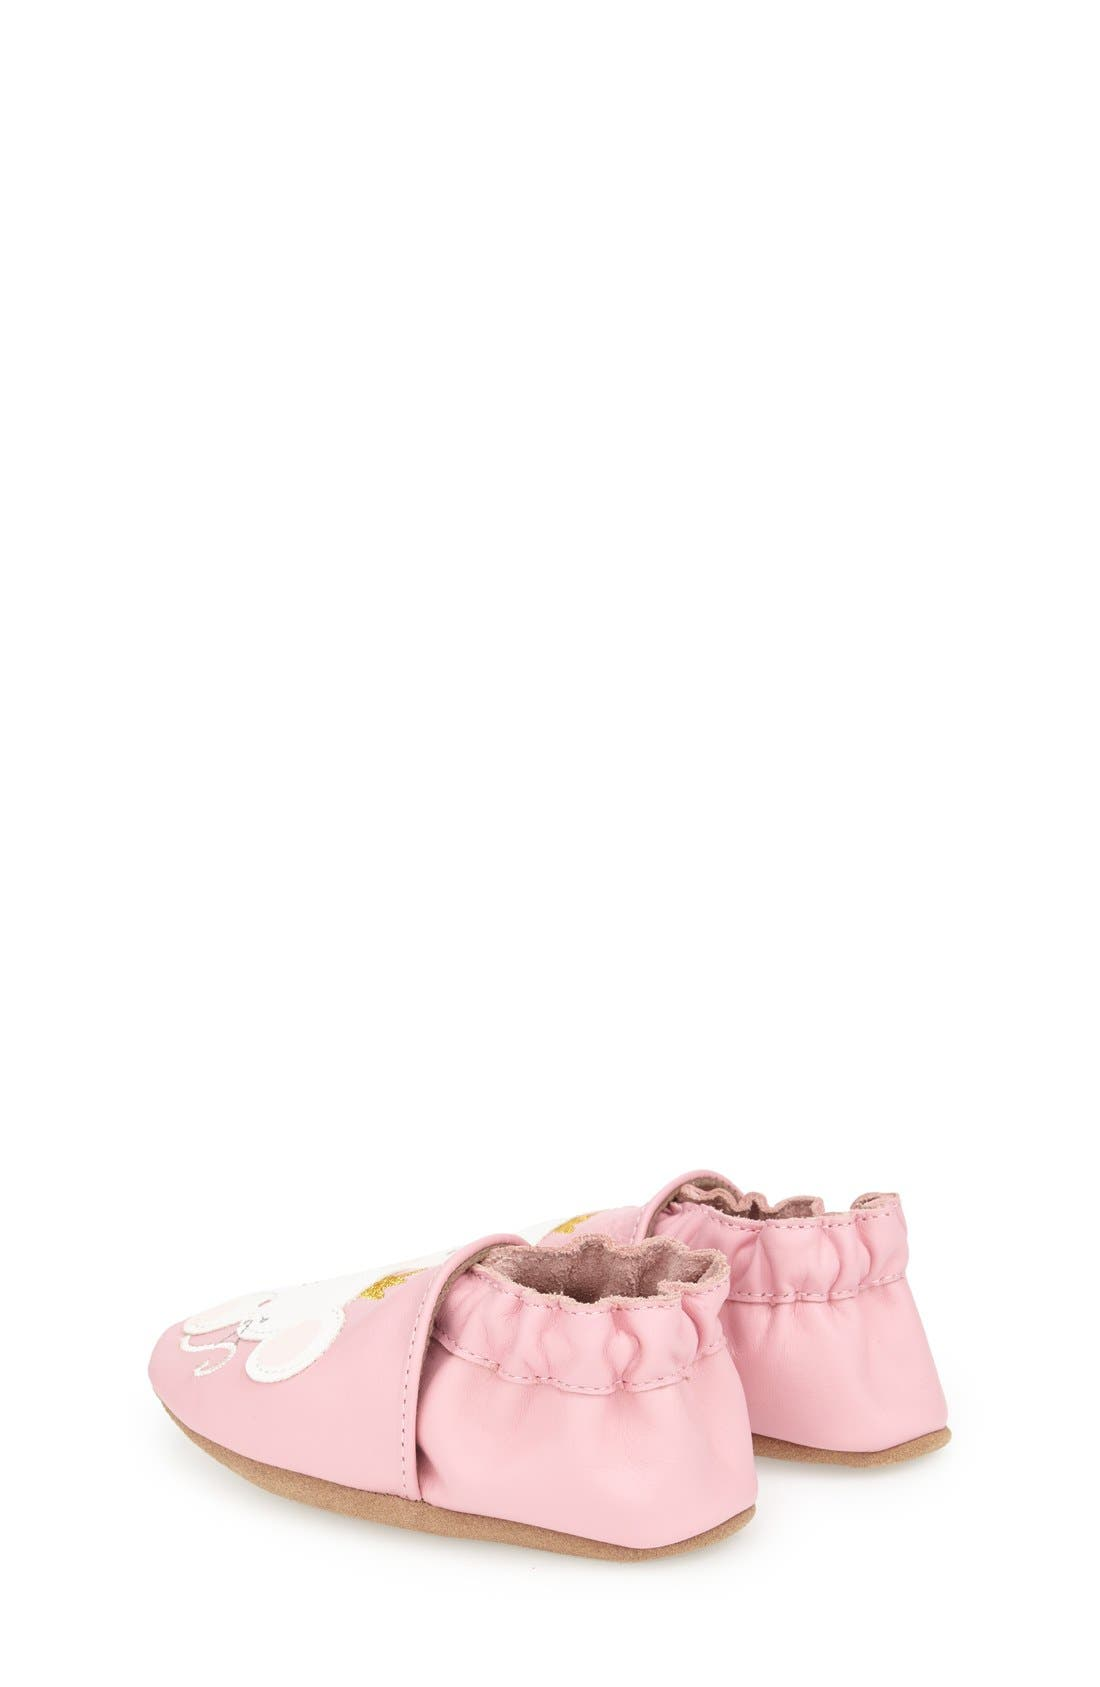 'Princess' Crib Shoe,                             Alternate thumbnail 2, color,                             650